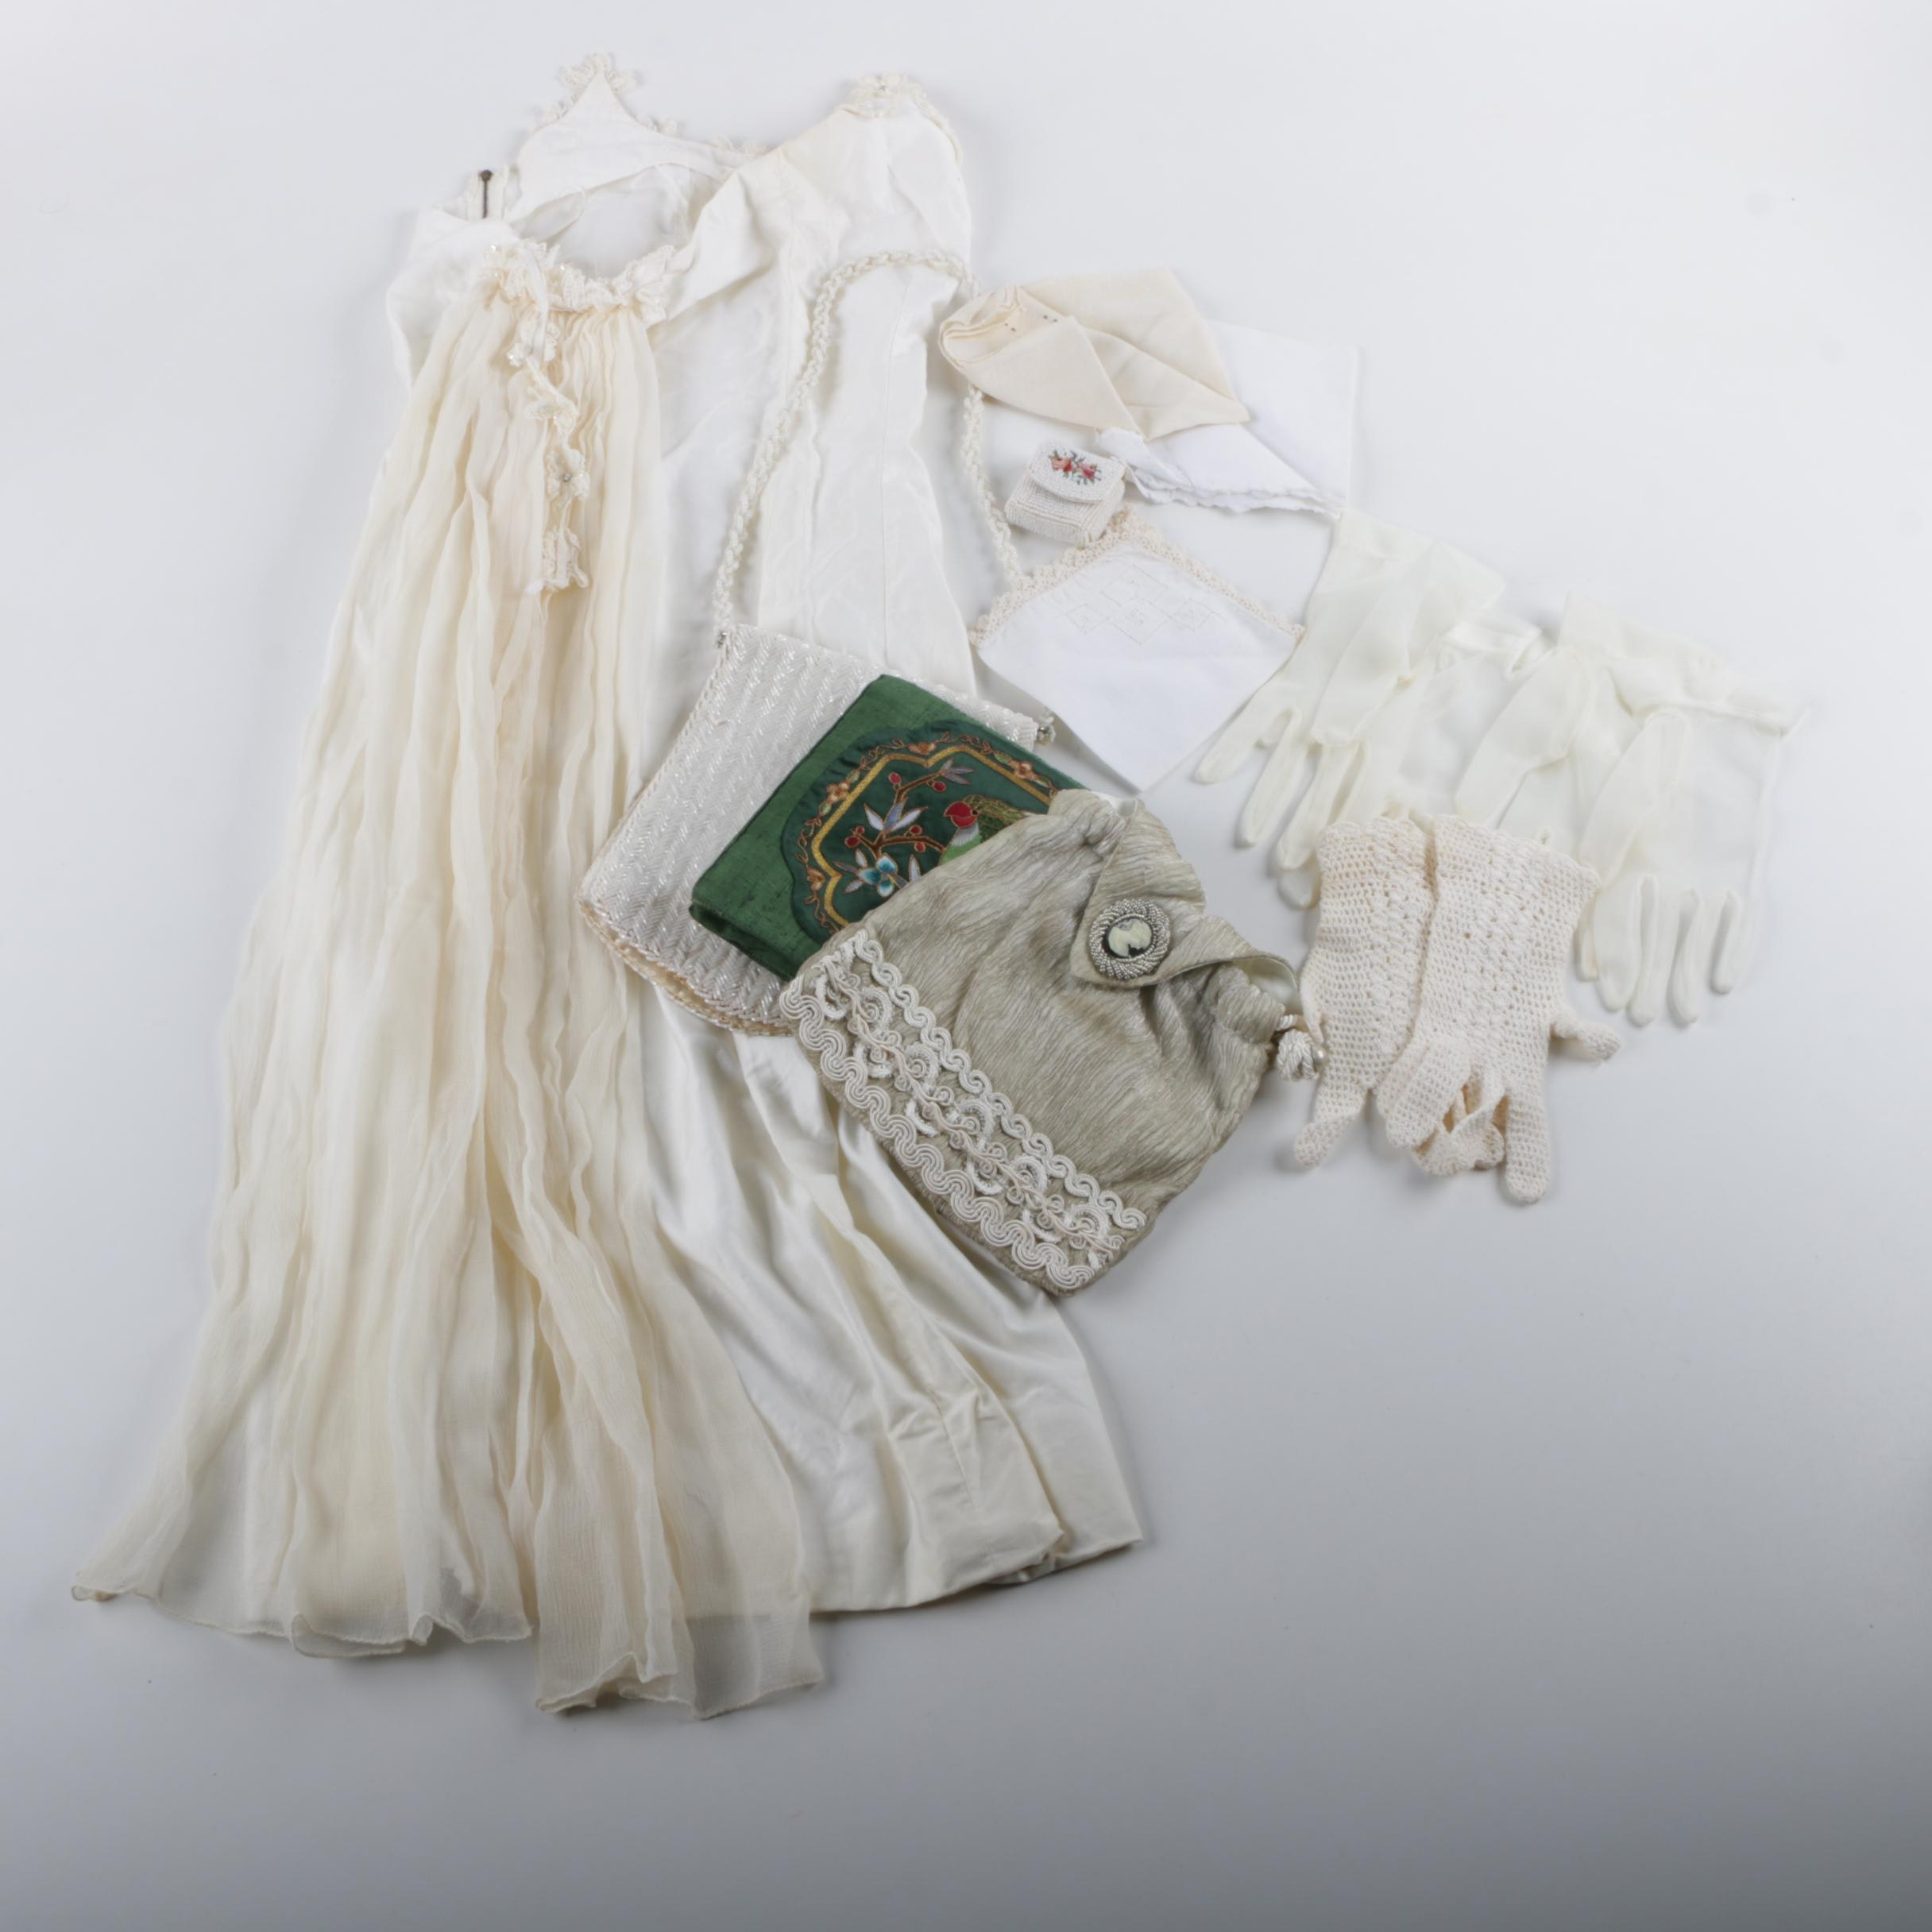 Vintage Slip Dress with Train and Women's Accessories